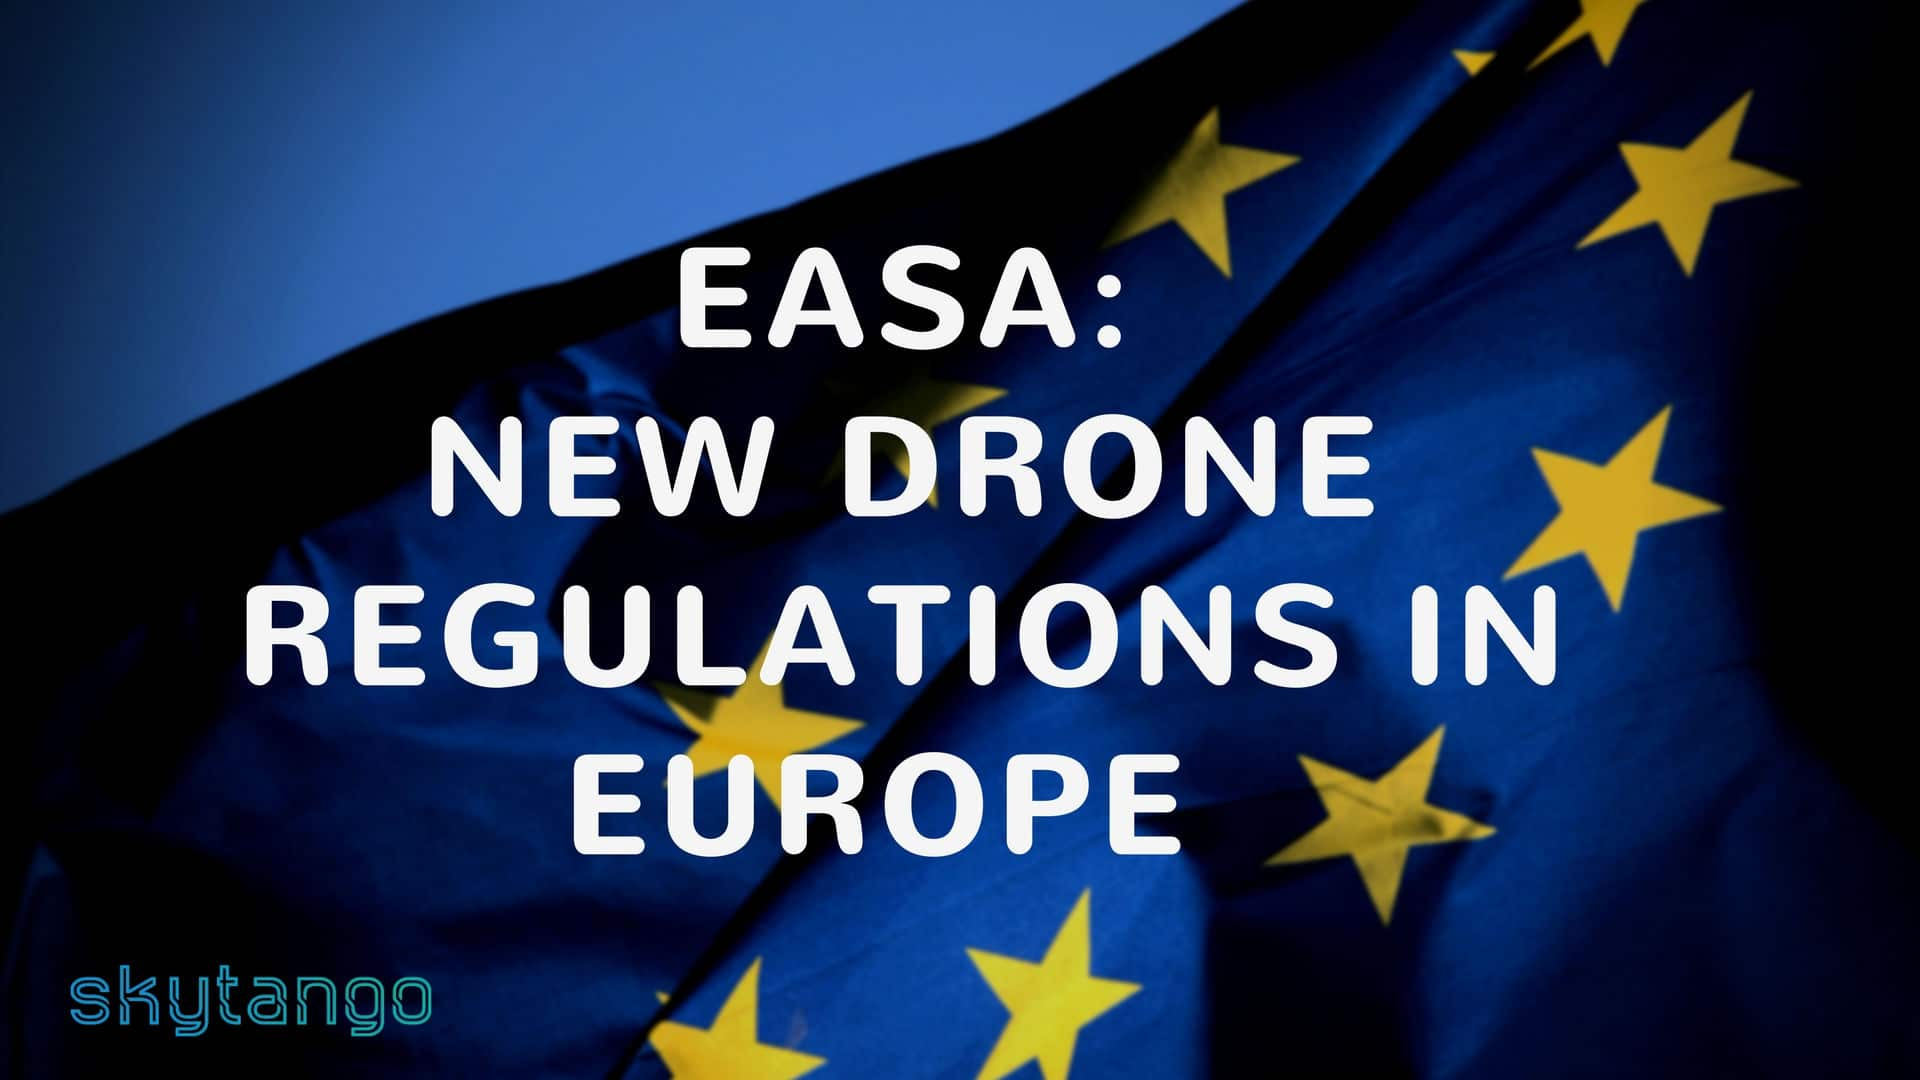 EASA proposes new drone regulations in Europe